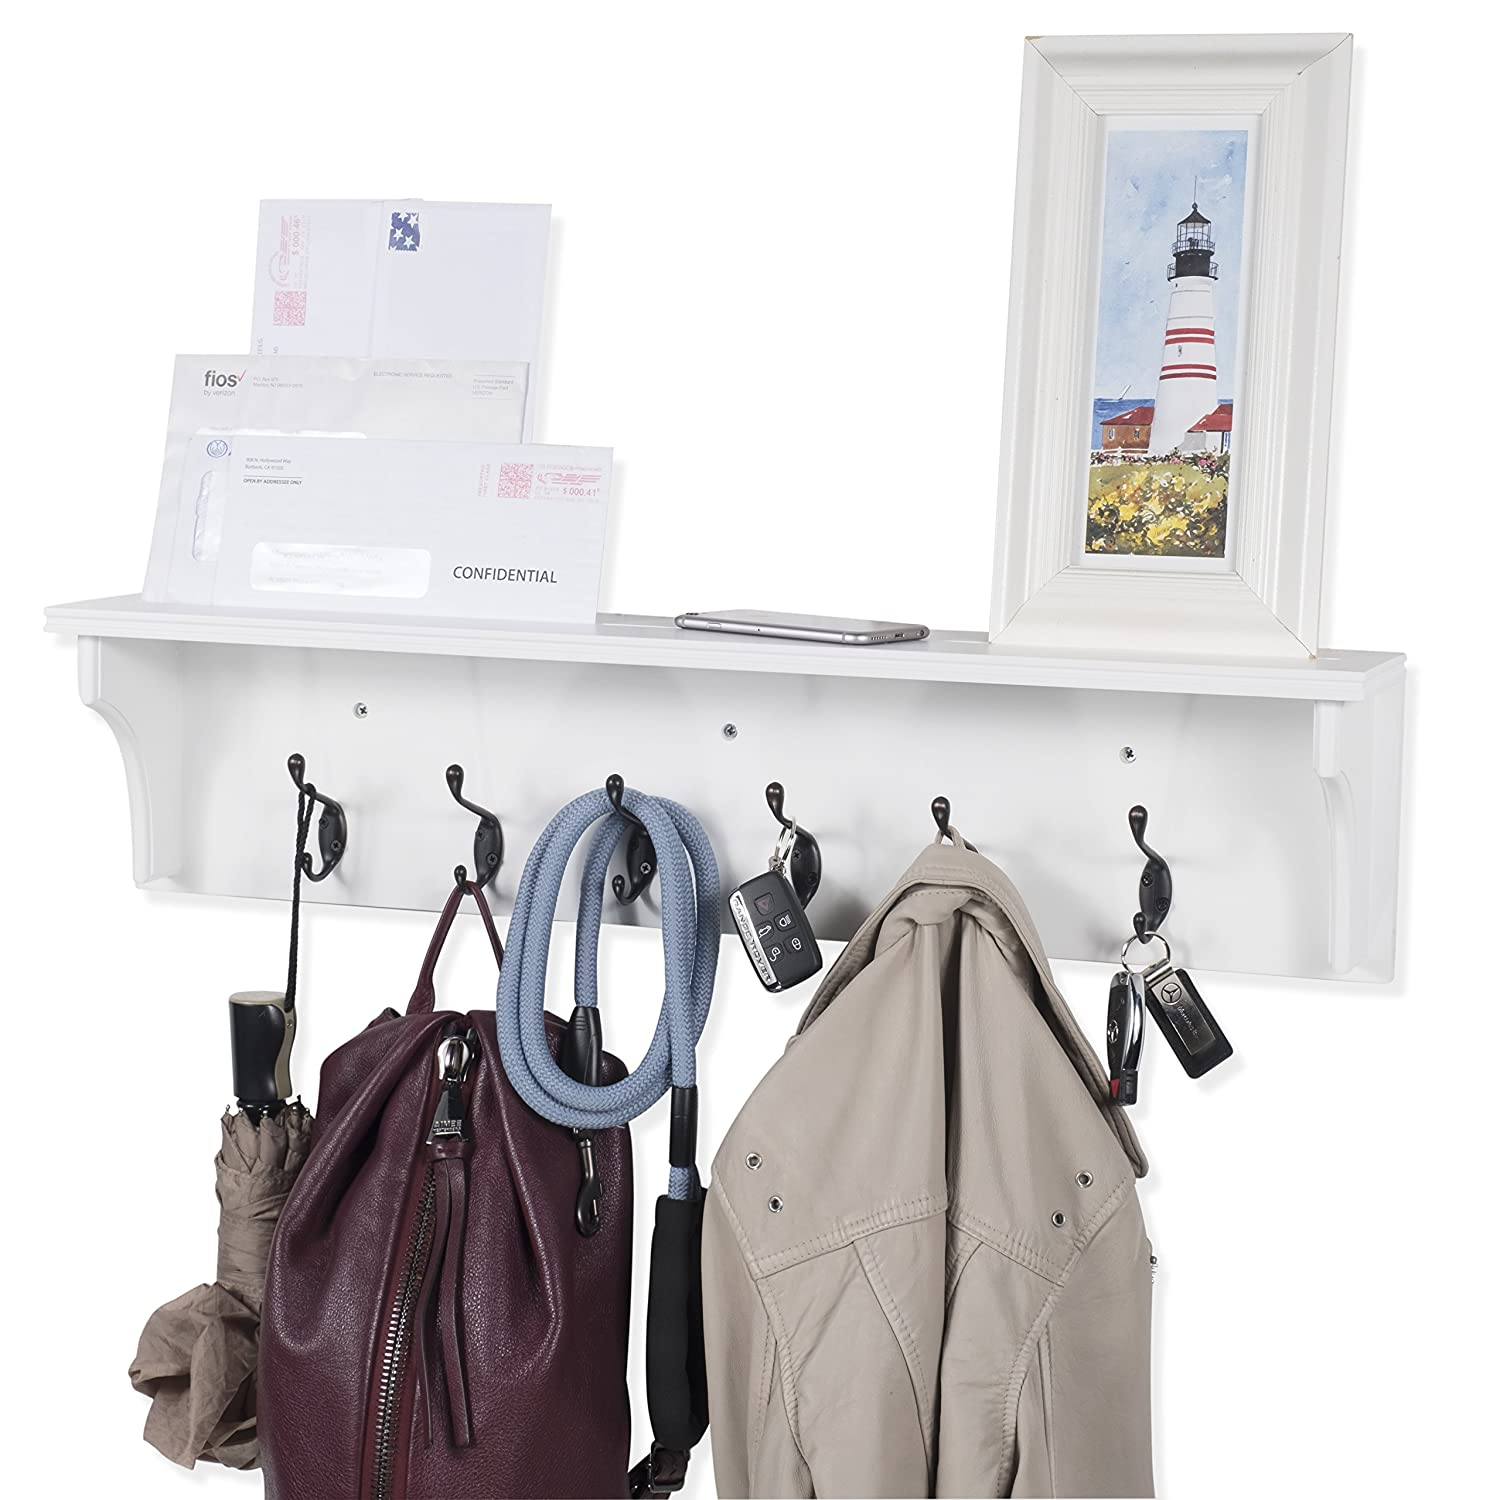 Solid Wood Entryway Organization Wall Mountable 30 Inch Coat Rack with 6 Hooks Walnut (White) Brightmaison